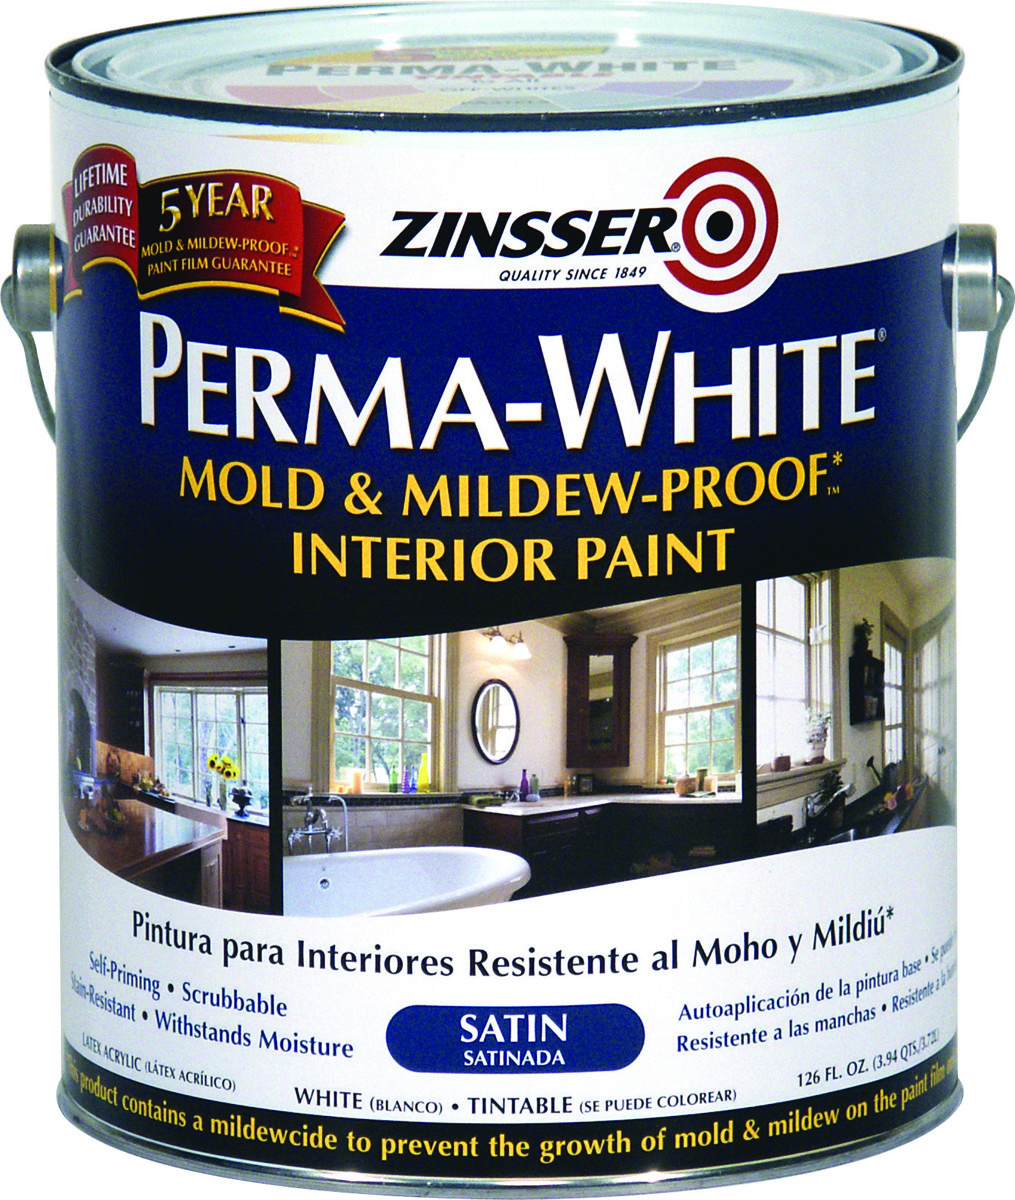 Zinsser 03101 Perma-White Satin Mold & Mildew-Proof